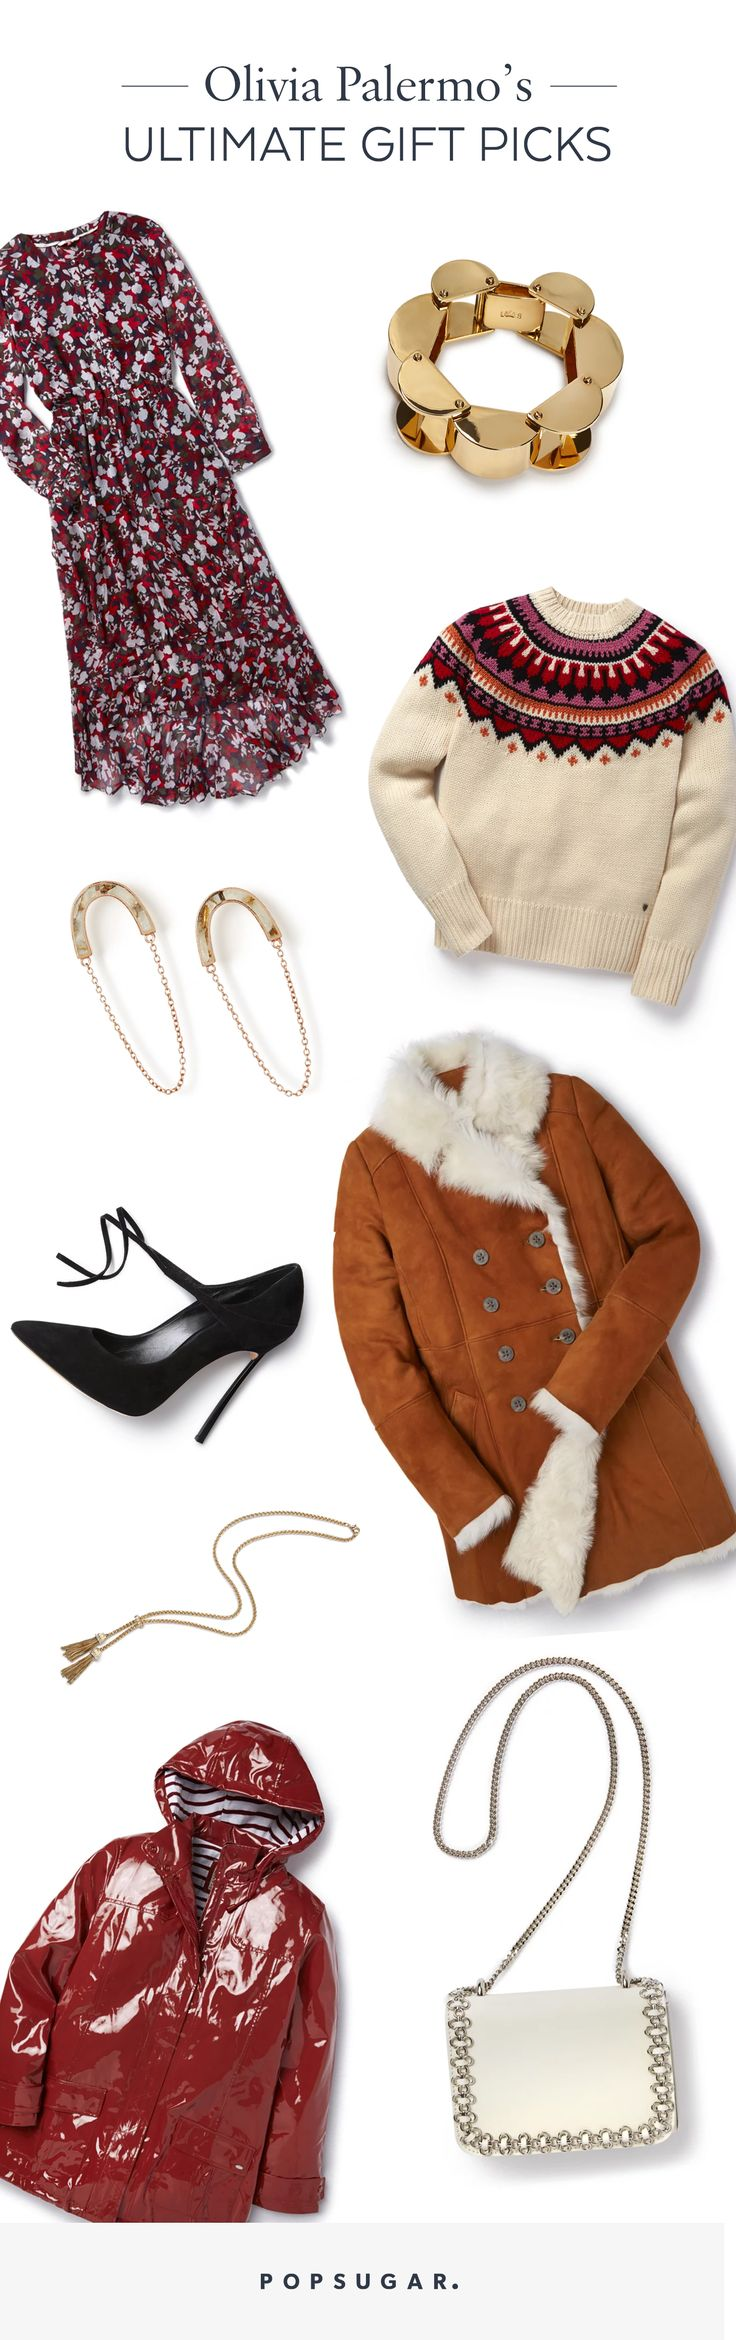 Olivia Palermo gives Popsugar have favourite jewelry, accessories and fashion clothes gift picks on her christmas list